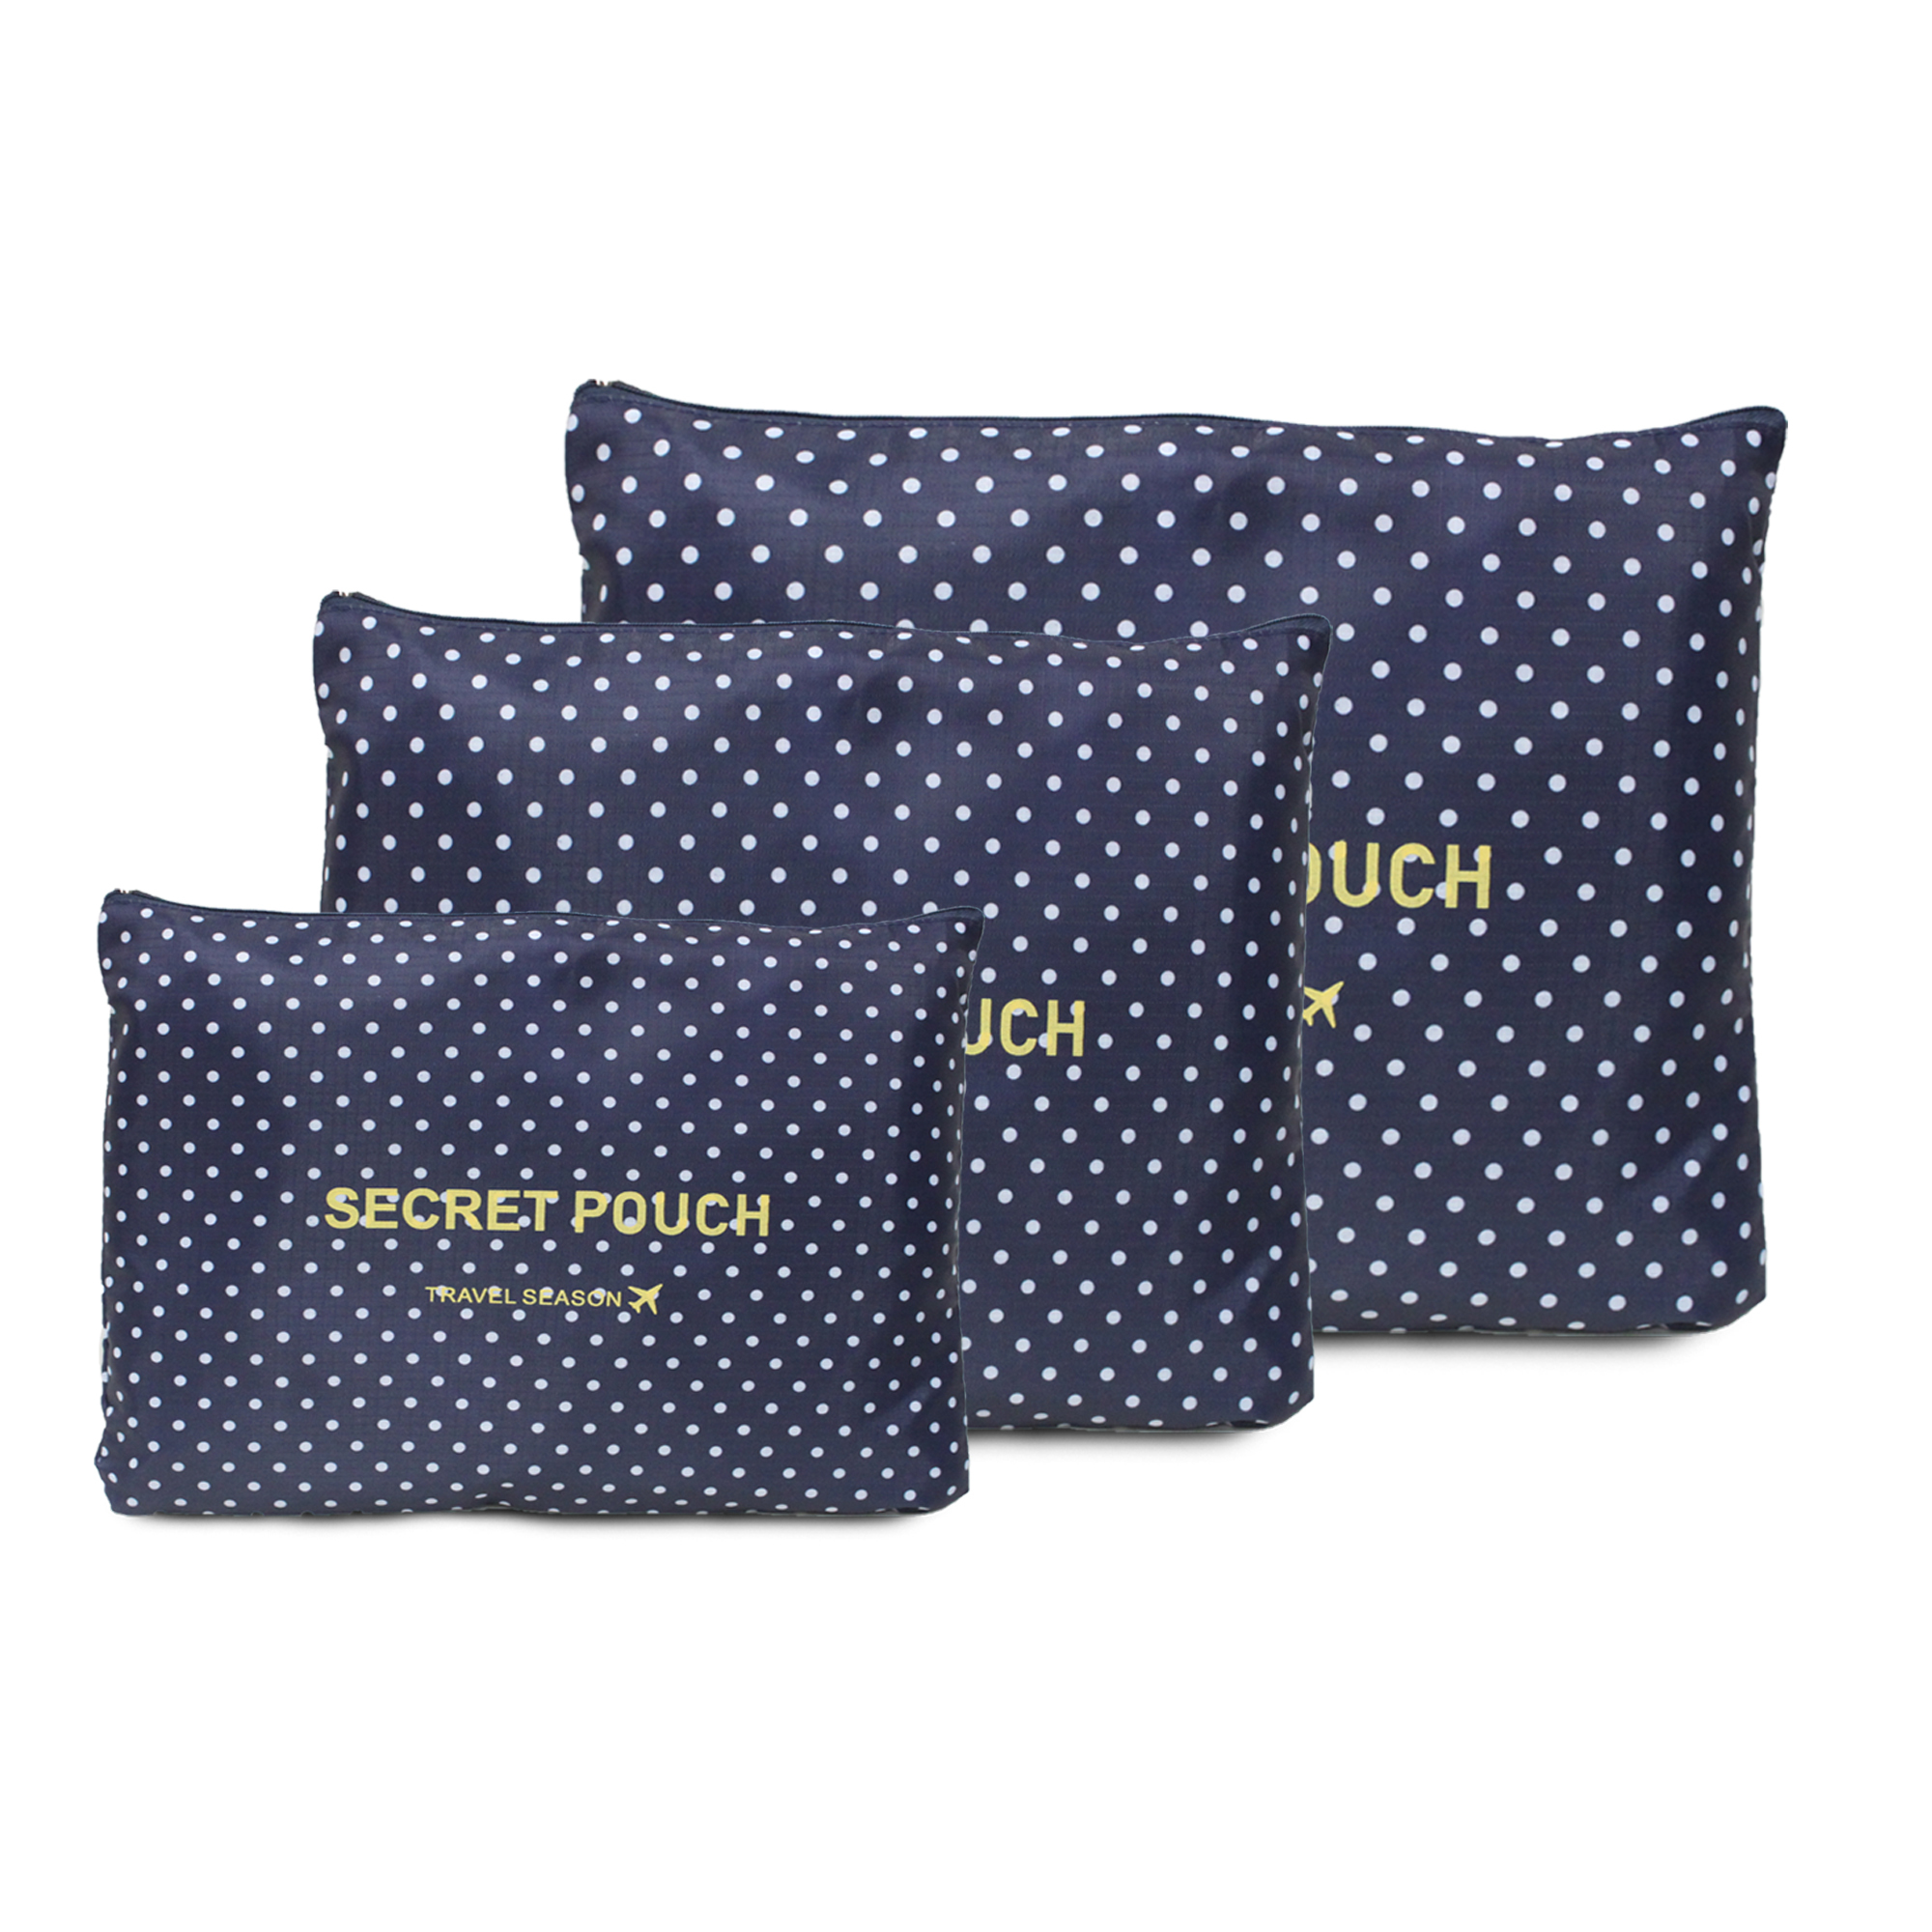 6 in 1 Packing Bags (Polka Navy blue)